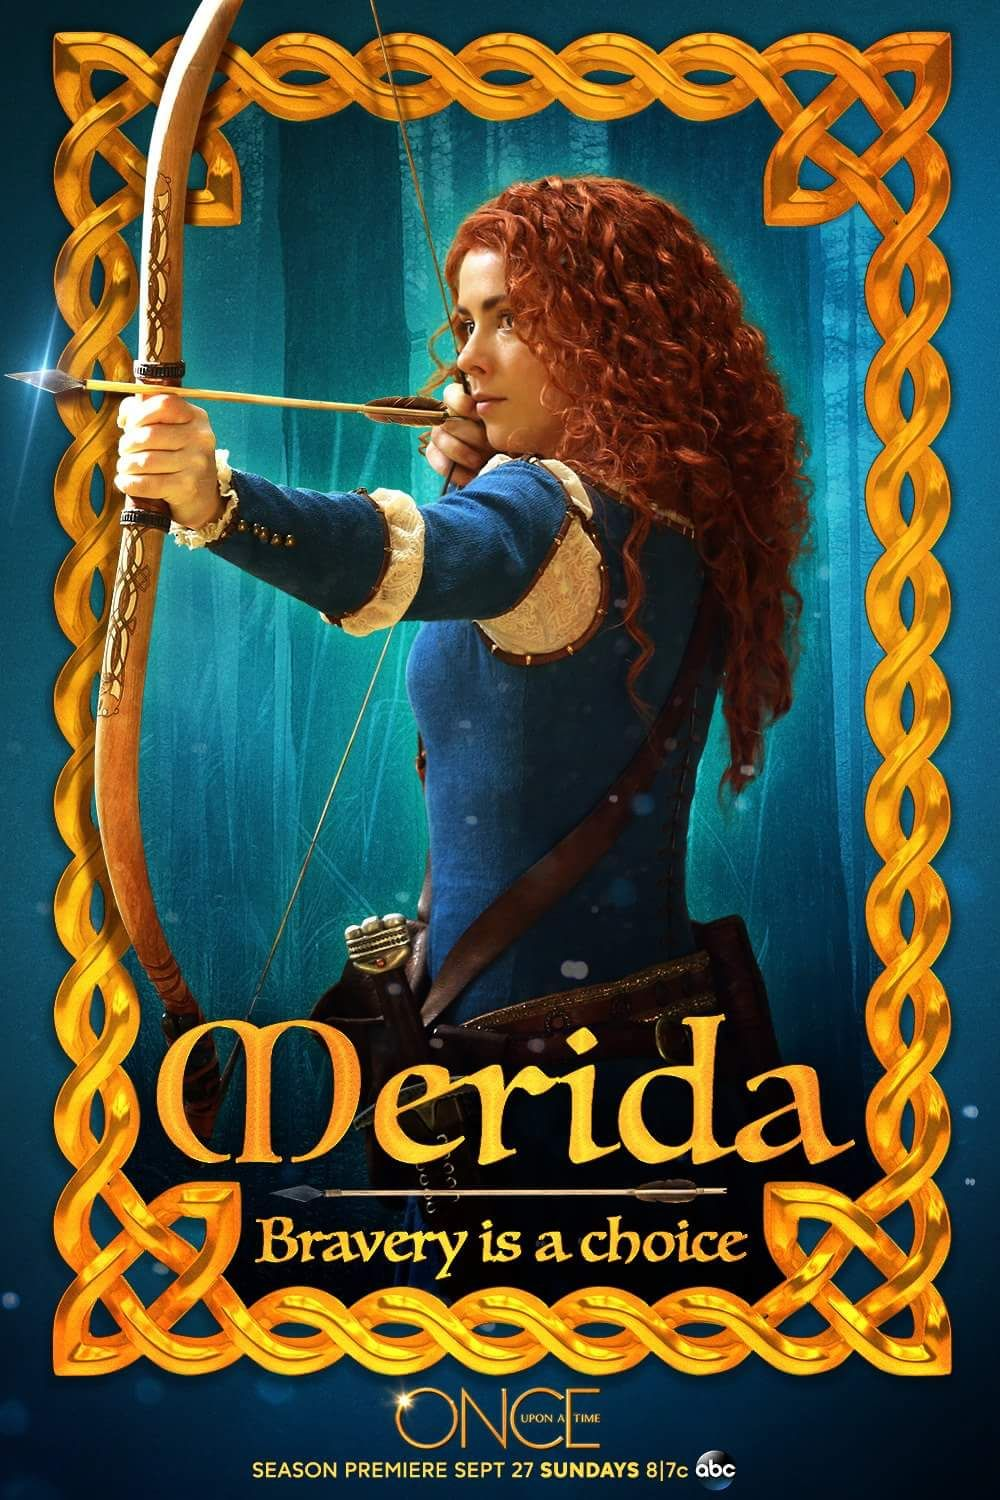 #Oncers, are you ready for Merida?